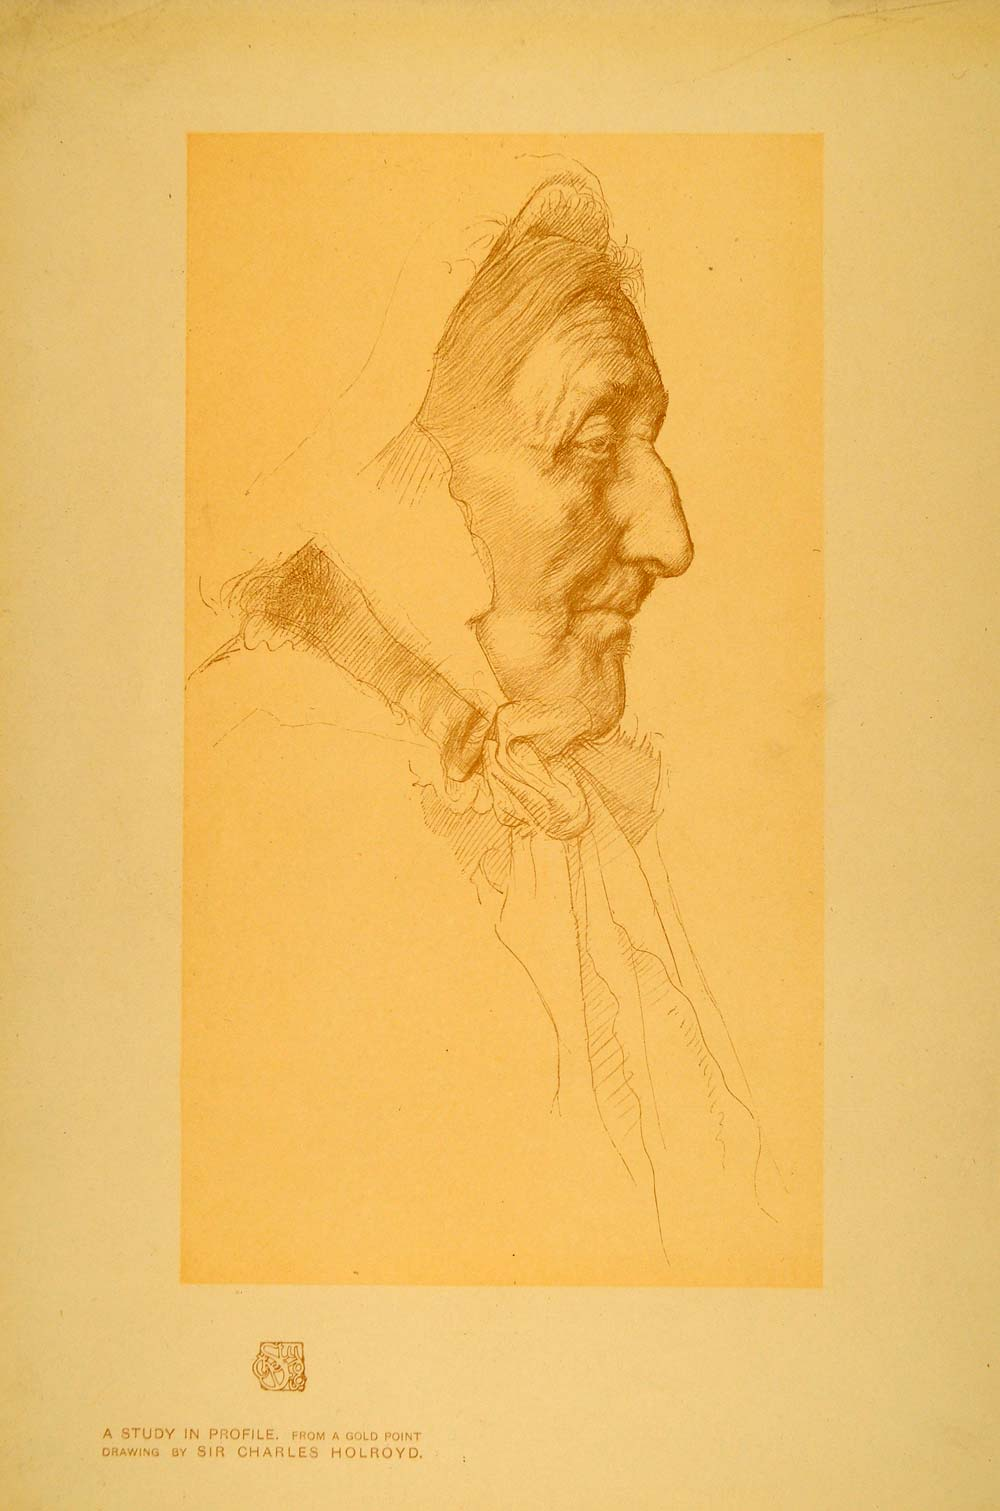 1908 Print Study Profile Gold Point Drawing Old Women - ORIGINAL INS2